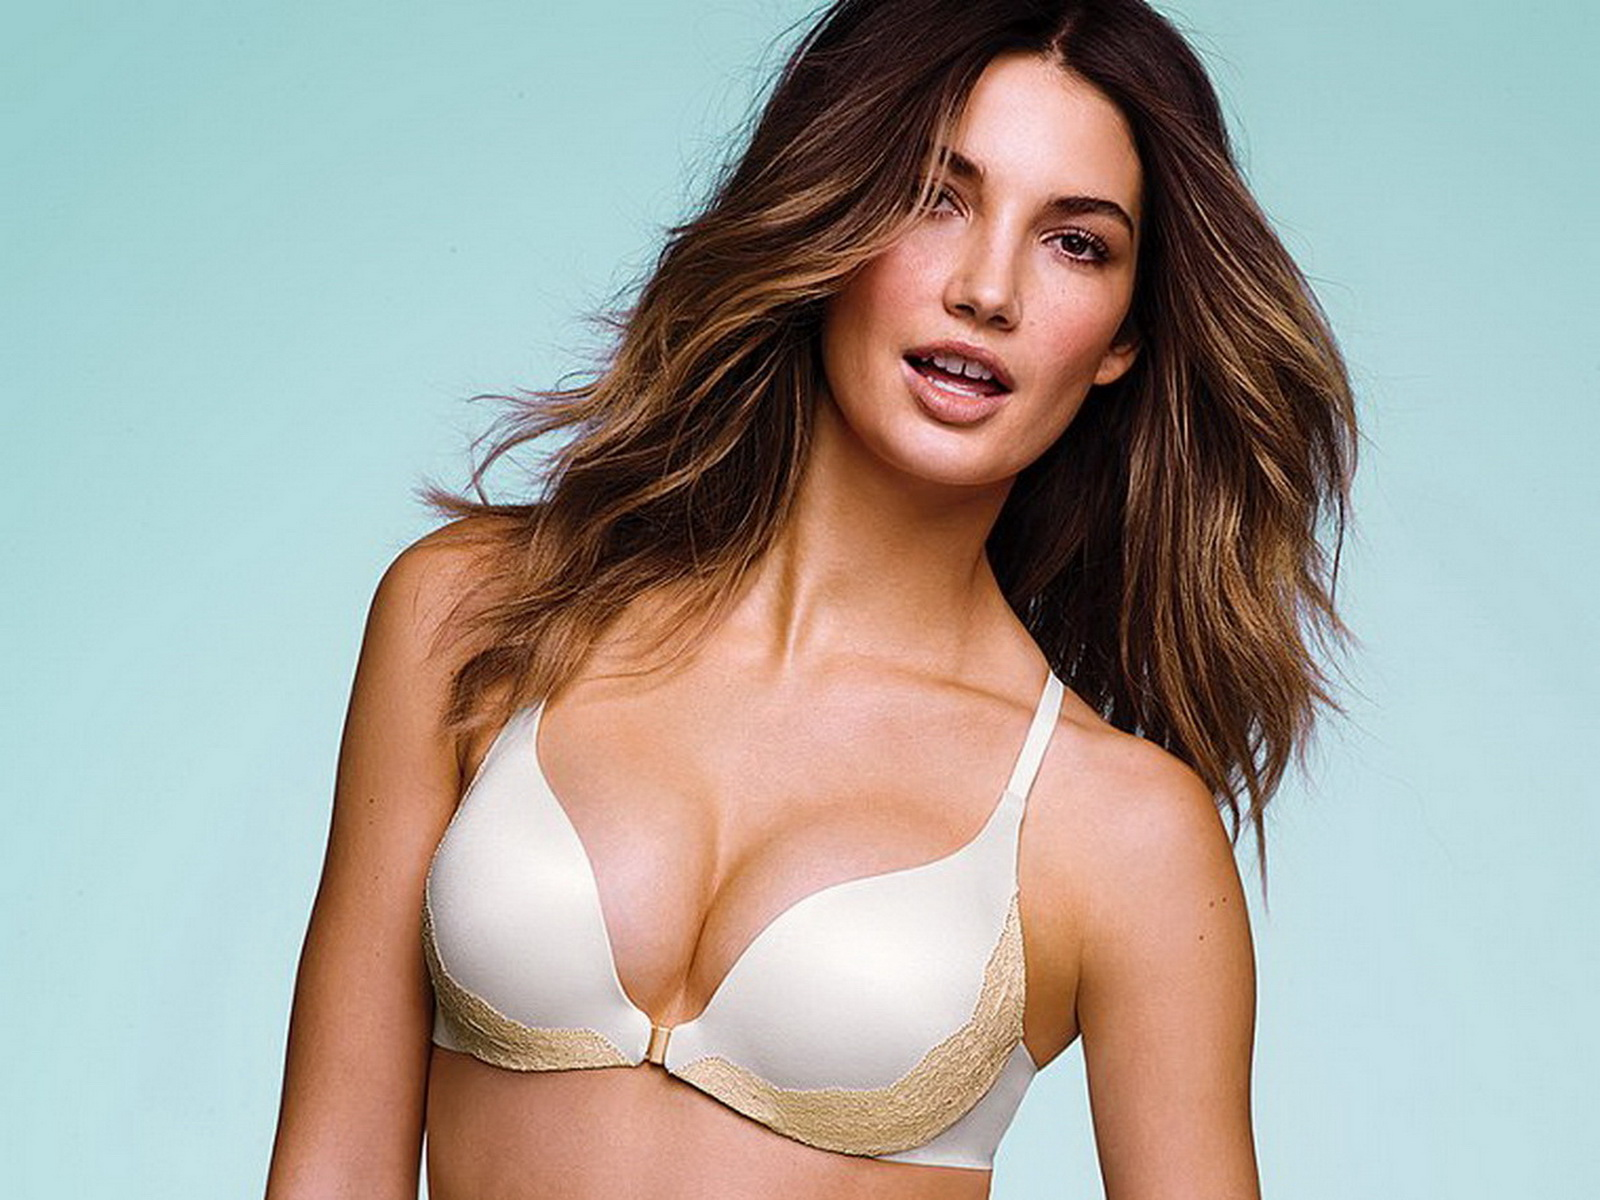 http://2.bp.blogspot.com/-wzYAHrT8Hq4/T2pjcz2L1xI/AAAAAAAAAes/TkftylQY_oE/s1600/Lily+Aldridge+hot+in+sexy+Victoria\'s+Secret+lingerie+2012+March+(2).jpg